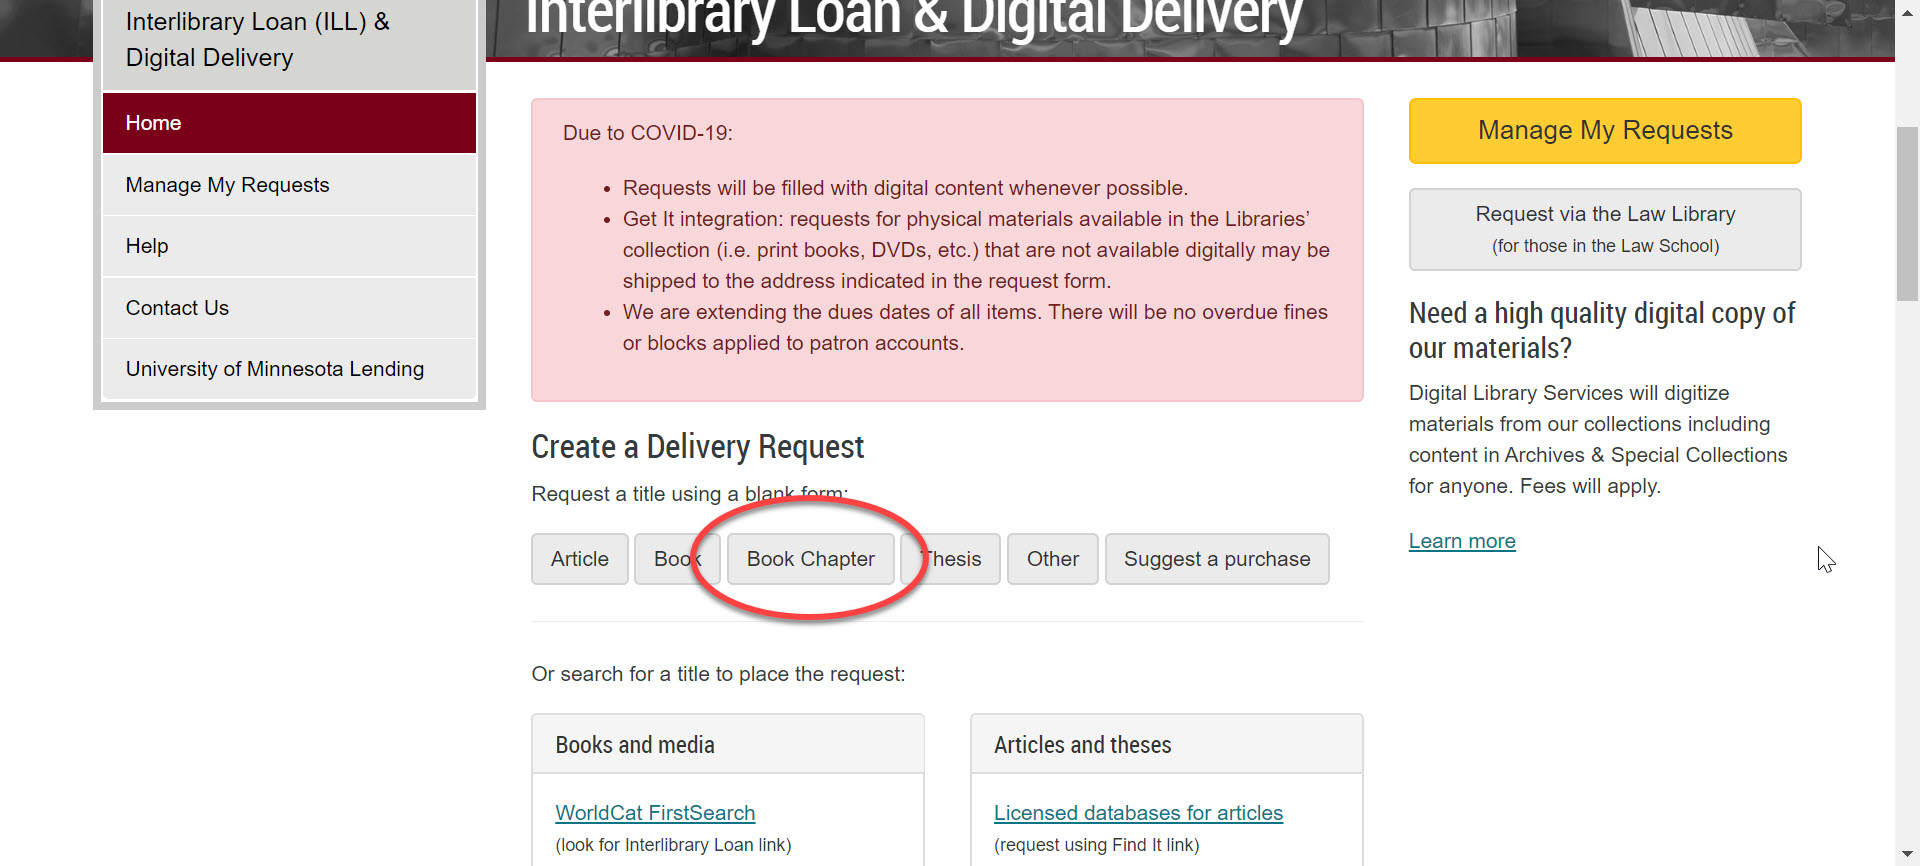 An image of the UMN Libraries Interlibrary Loan page (https://www.lib.umn.edu/interlibraryloan) with the place to click to select the form for requesting a scan of a Book Chapter circled.